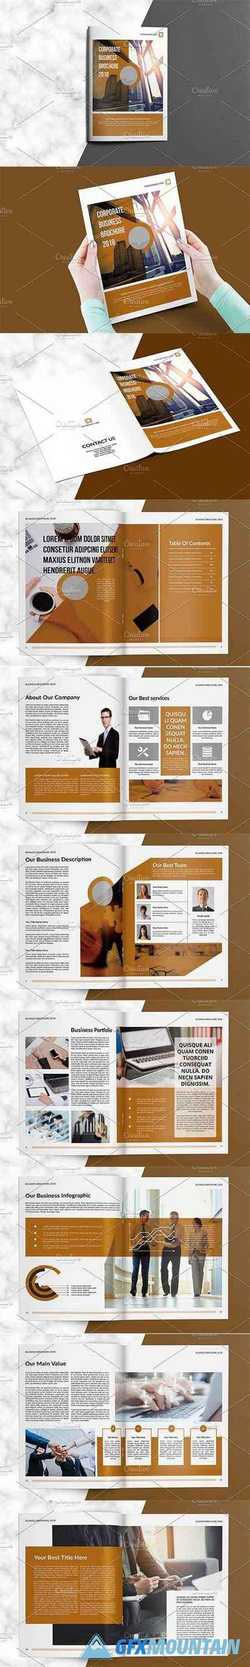 Business Brochure V805 2384484